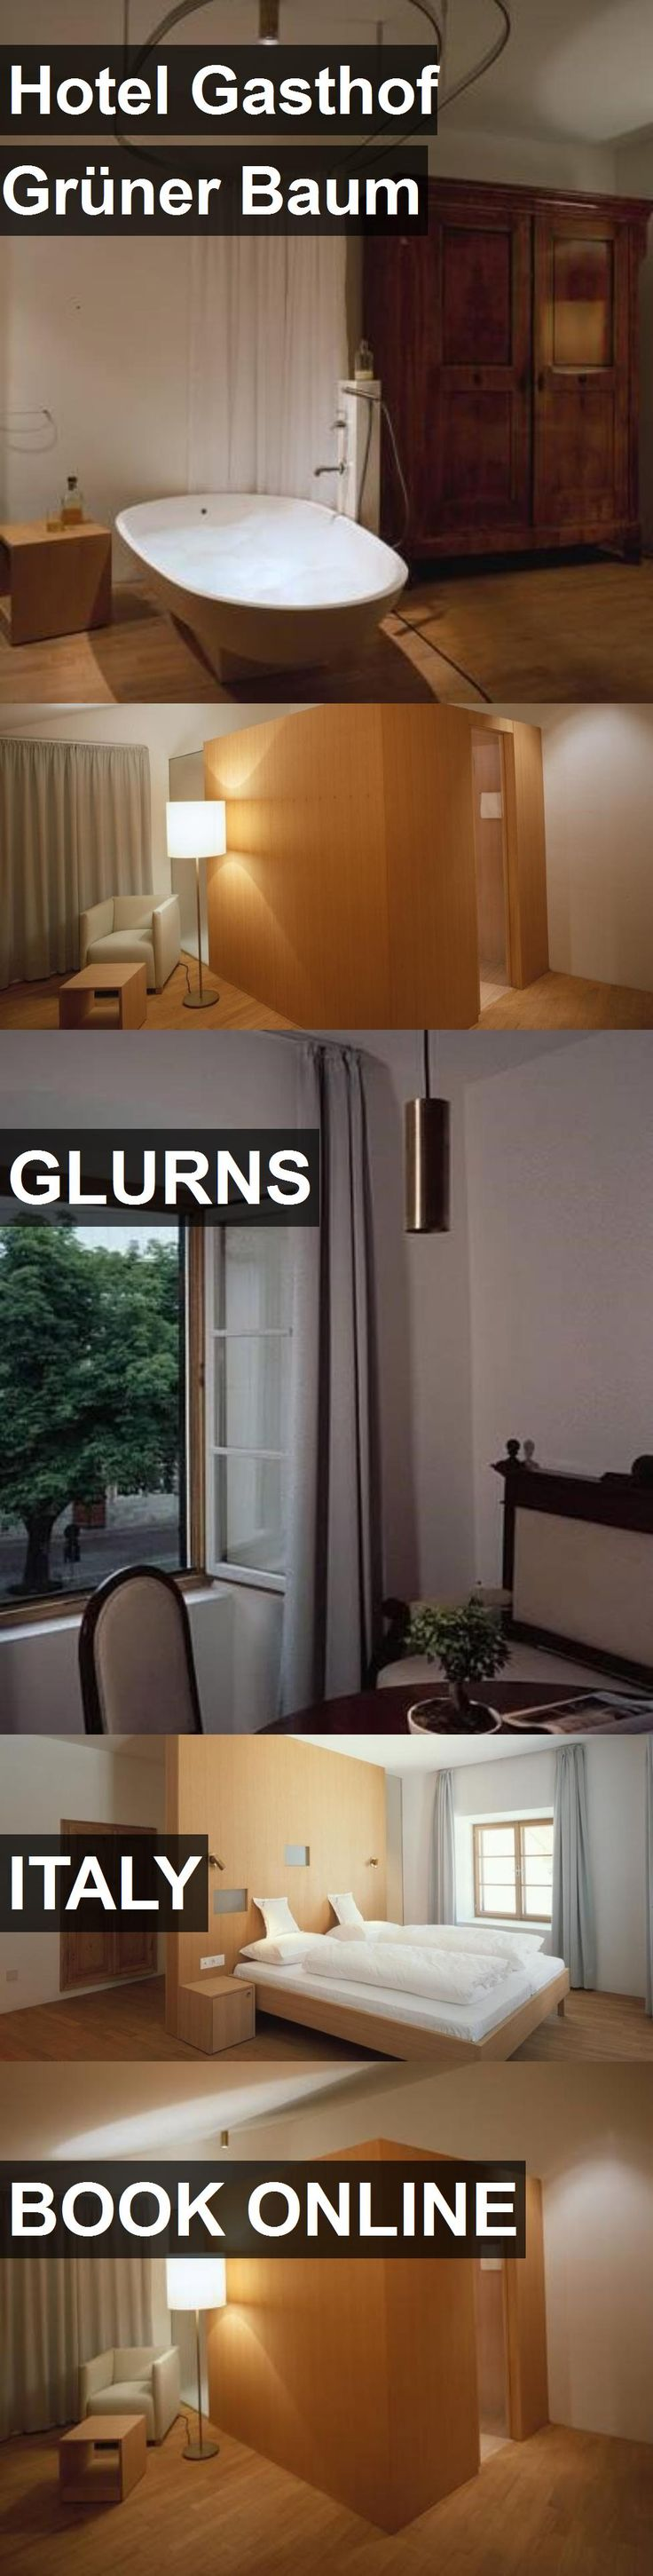 Hotel Hotel Gasthof Grüner Baum in Glurns, Italy. For more information, photos, reviews and best prices please follow the link. #Italy #Glurns #HotelGasthofGrünerBaum #hotel #travel #vacation